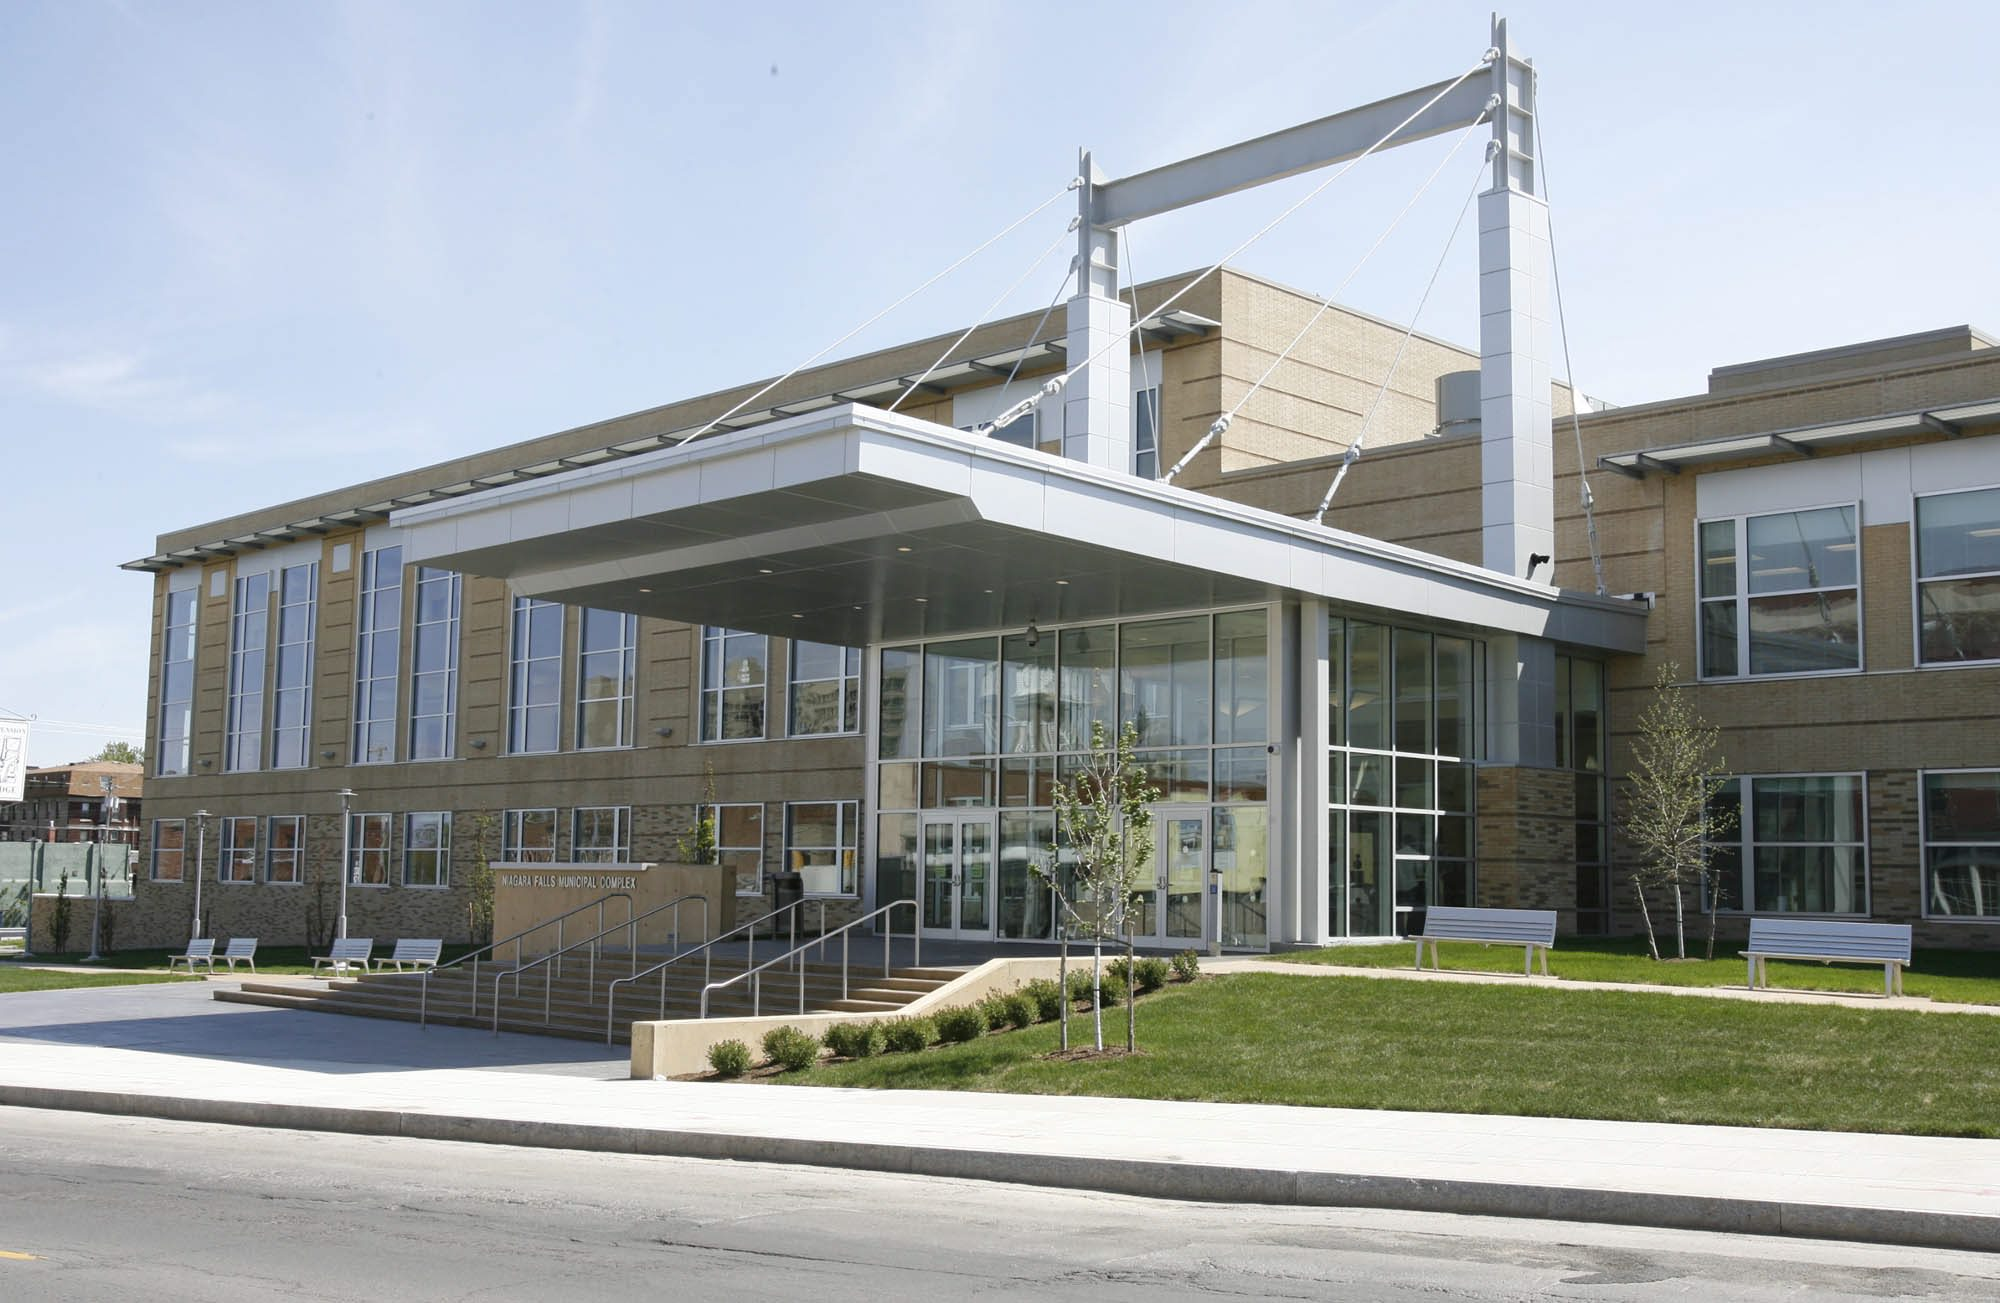 Niagara Falls Police headquarters at 1925 Main St. will soon be the home of a regional crime analysis center. (Harry Scull Jr./Buffalo News file photo)